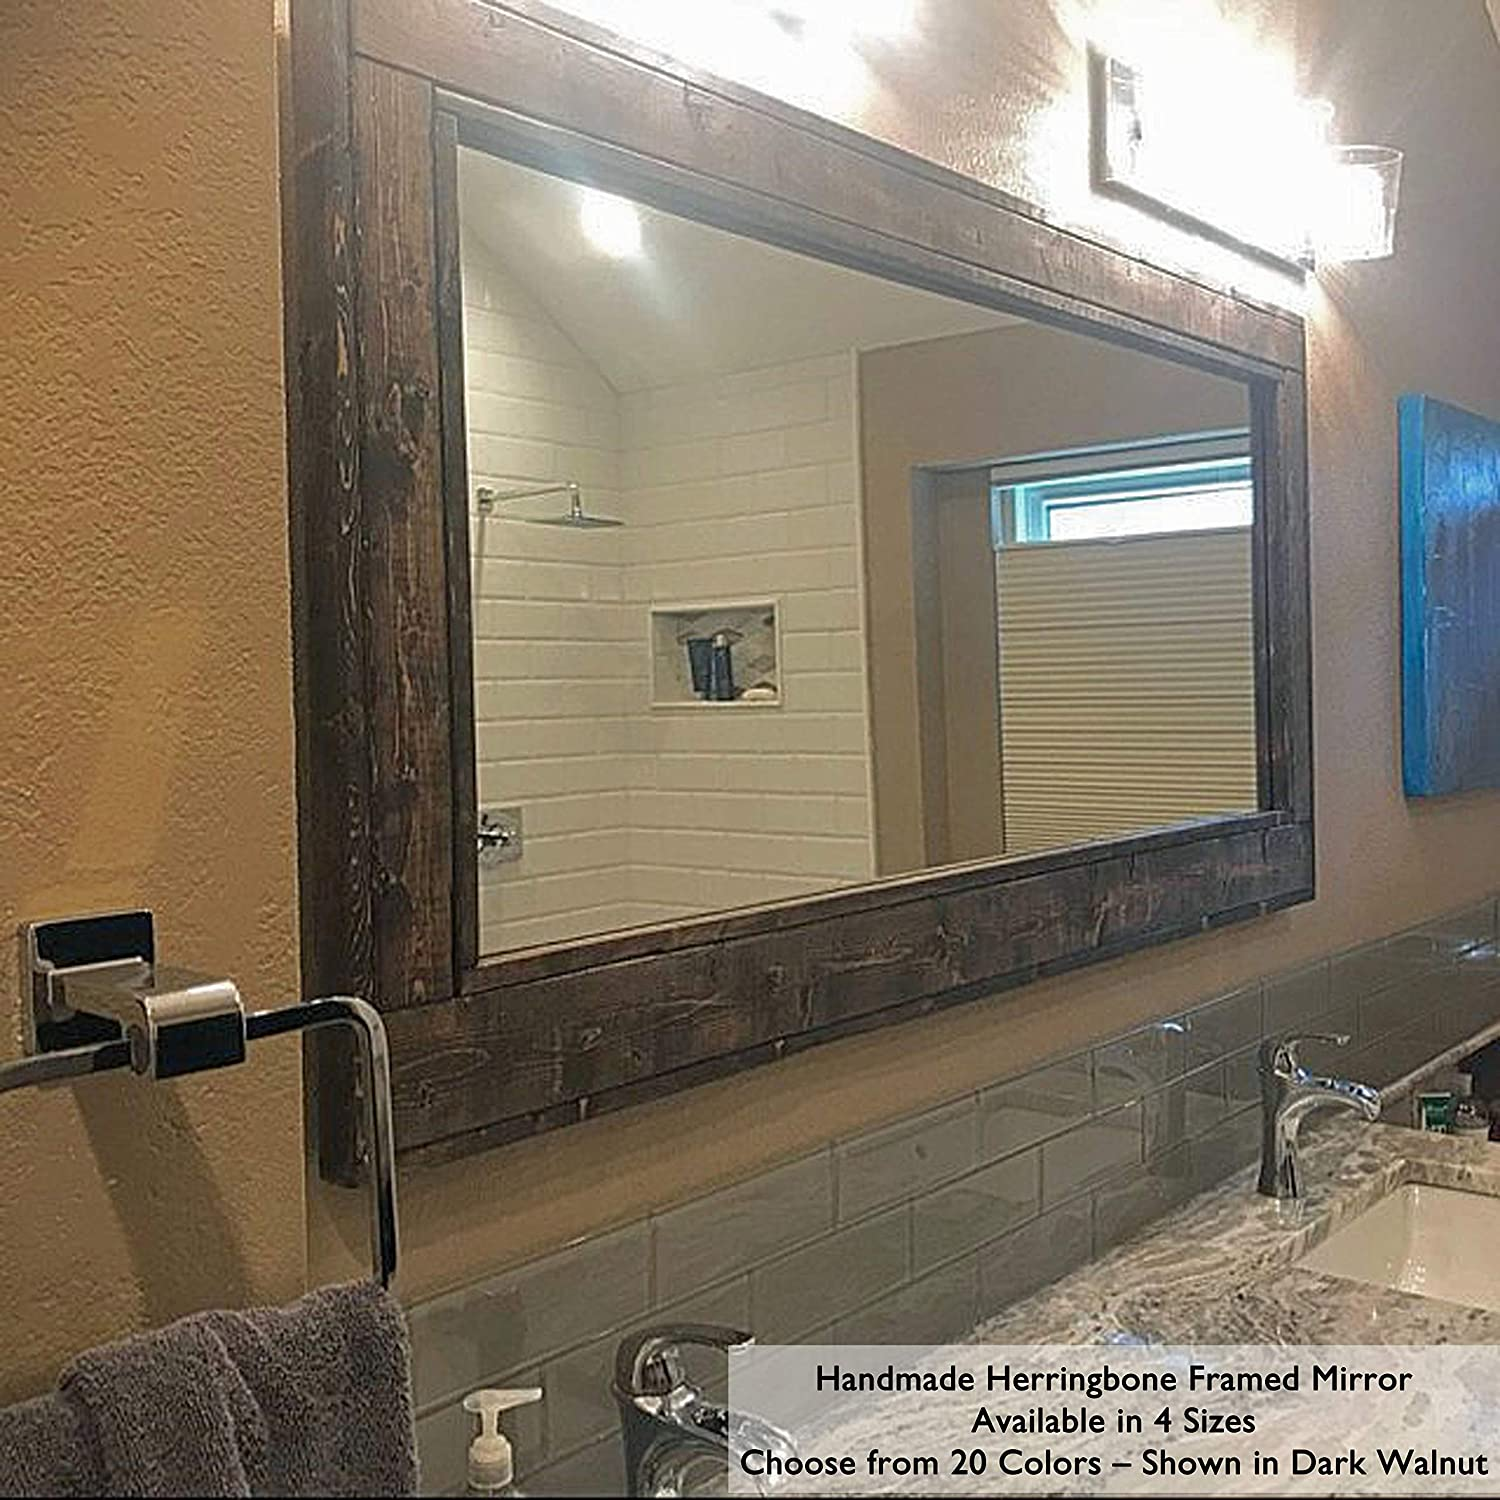 Amazon Com Herringbone Reclaimed Wood Ex Large Framed Mirror Available In 4 Sizes And 20 Stain Colors Shown In Dark Walnut Bathroom Vanity Mirror Mirror Wall Mounted Rustic Decor Handmade